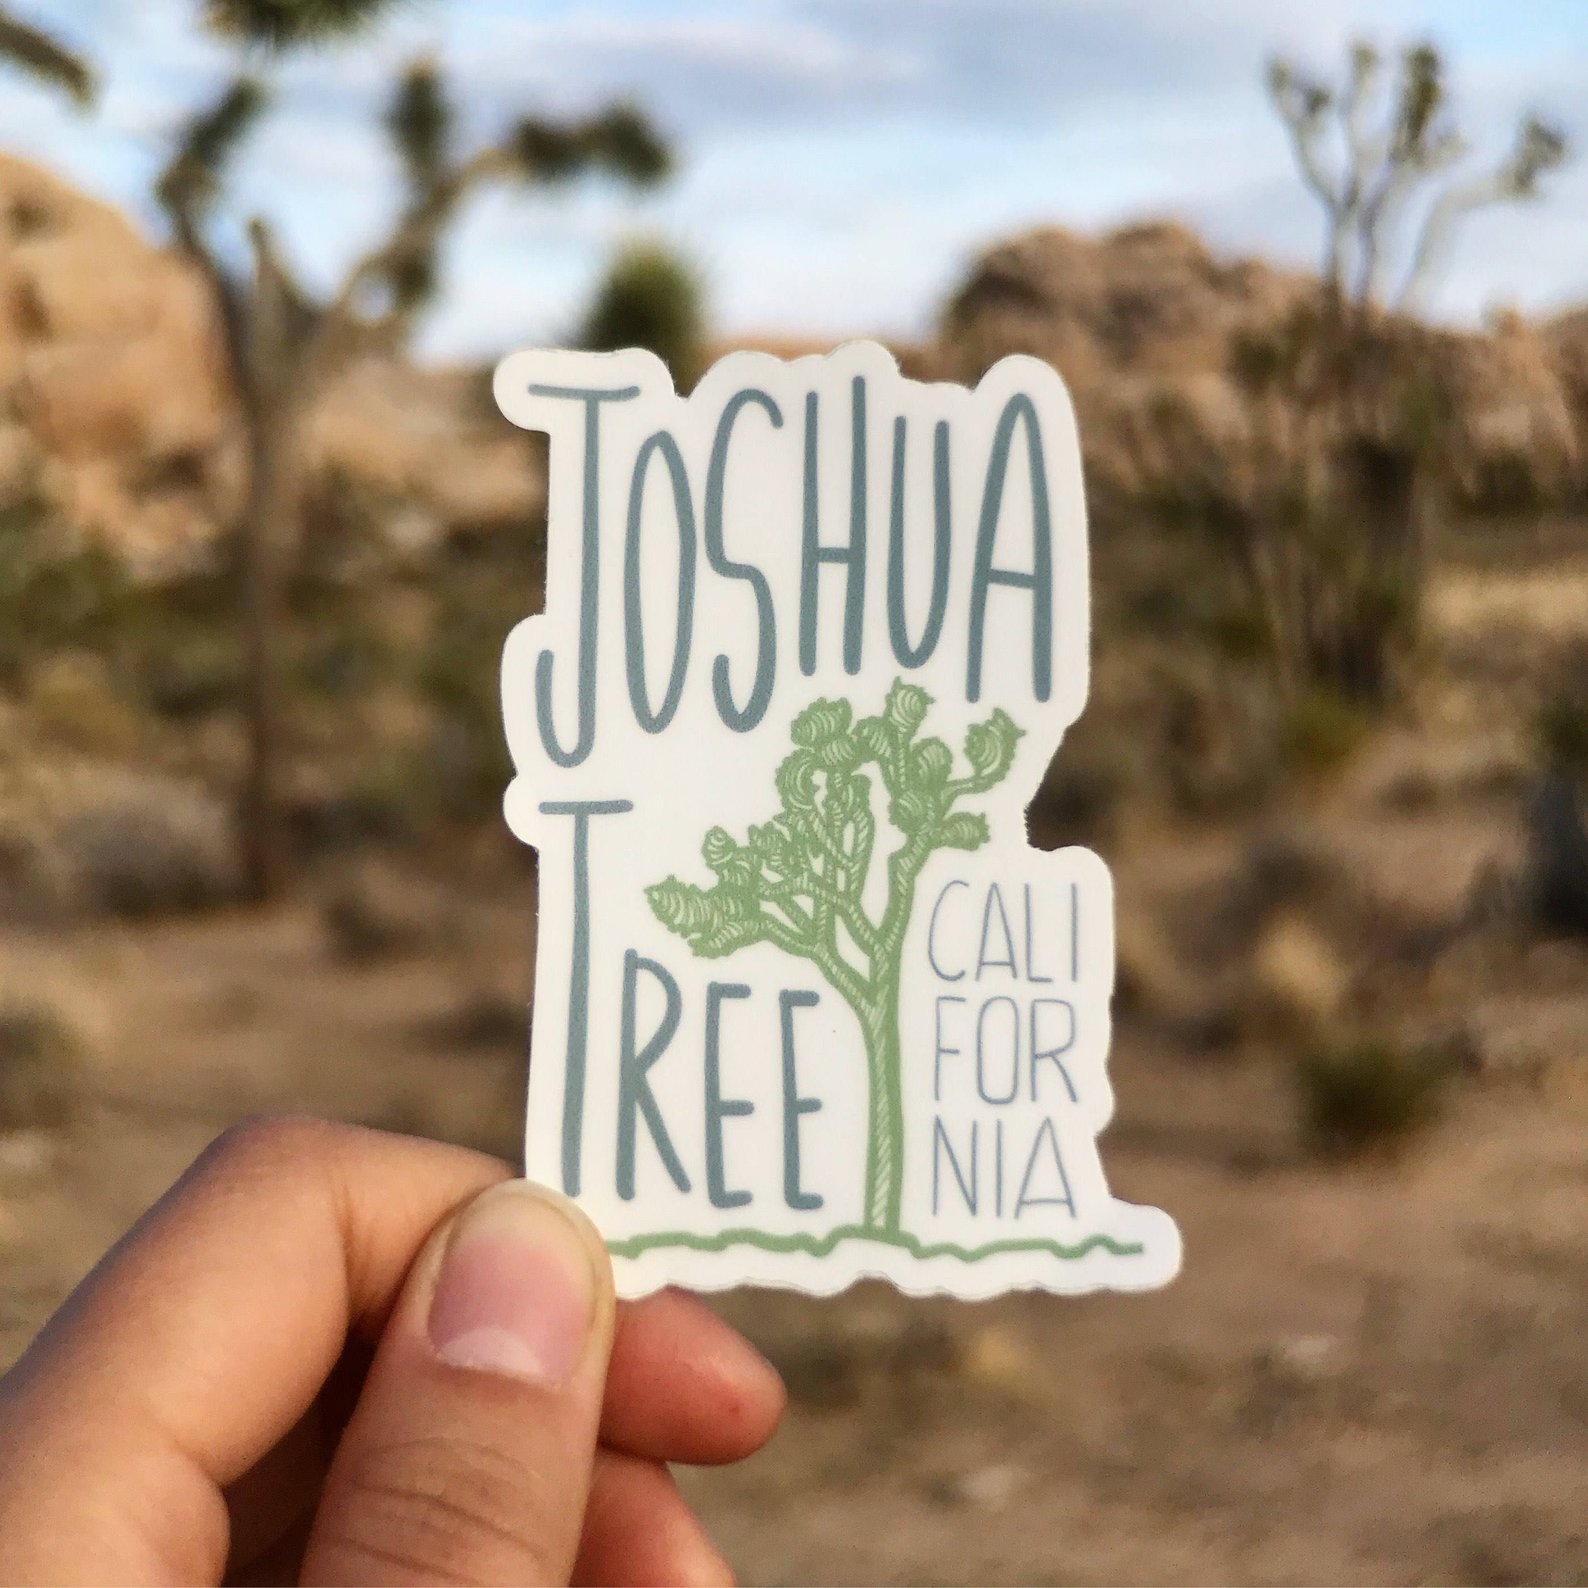 Joshua Tree National Park Vinyl Sticker By Imperfect Crafts Shop